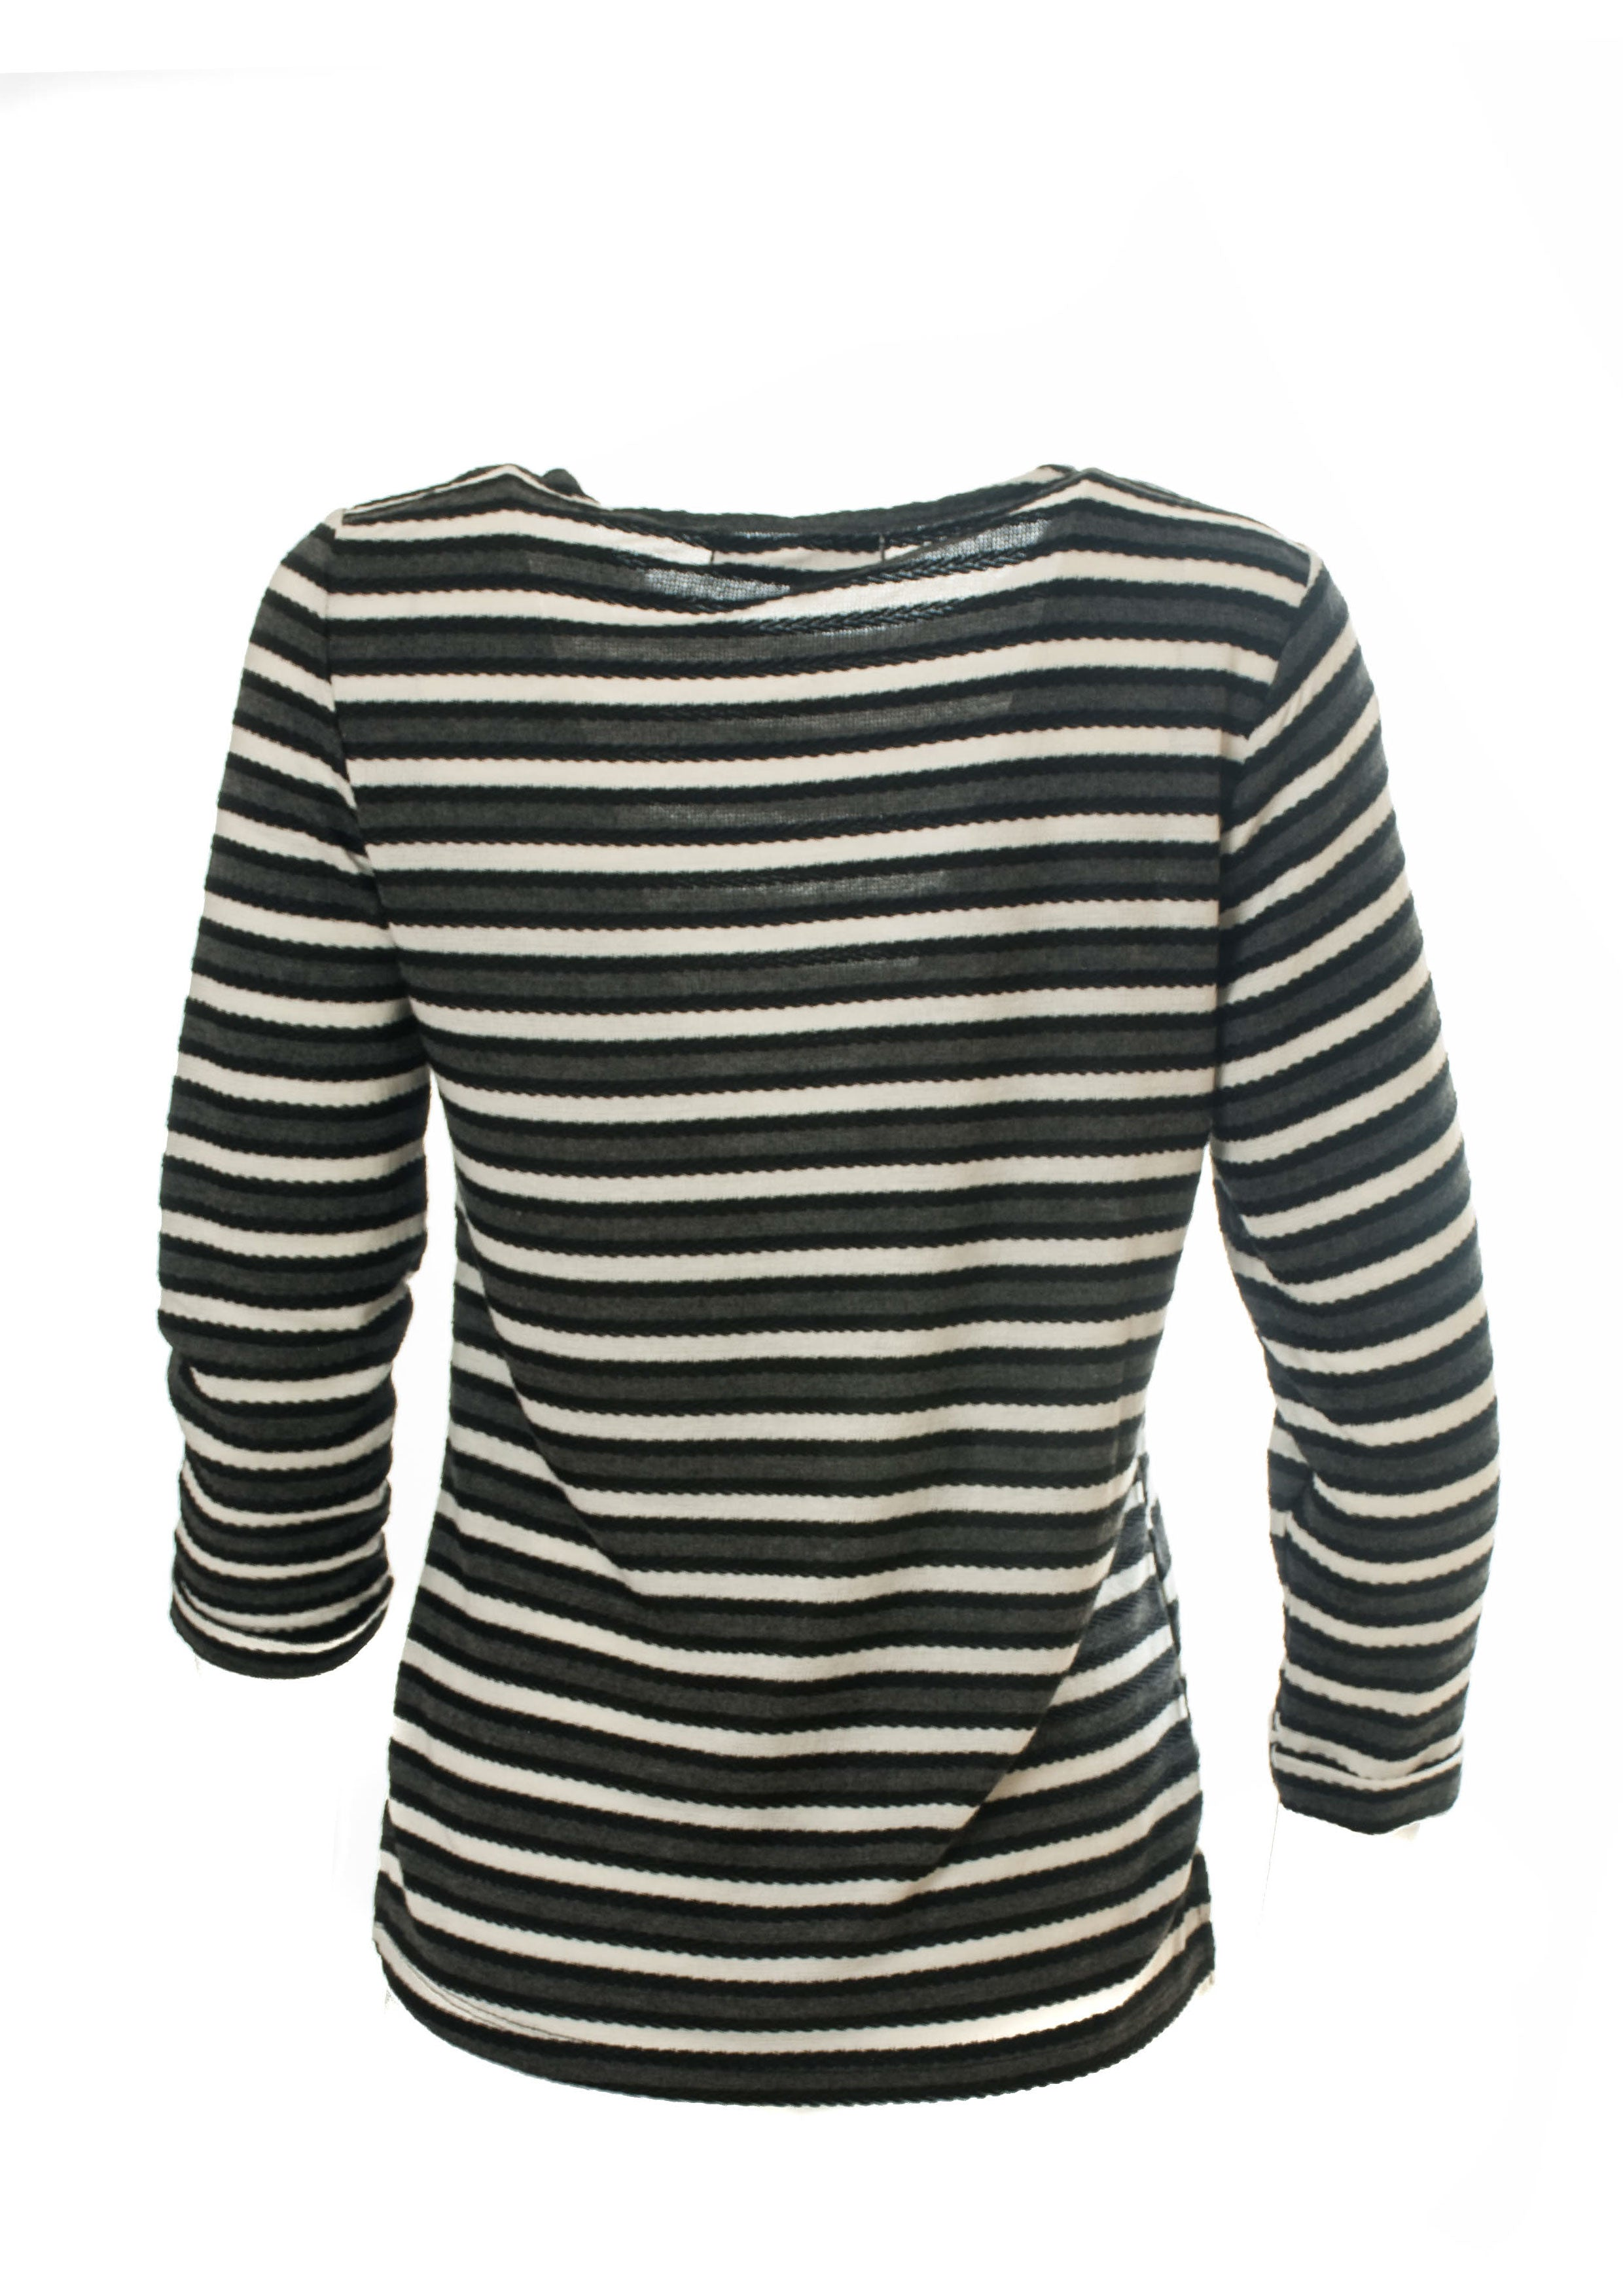 Yarn Dyed Textured Stripe Top With Roll Cuff